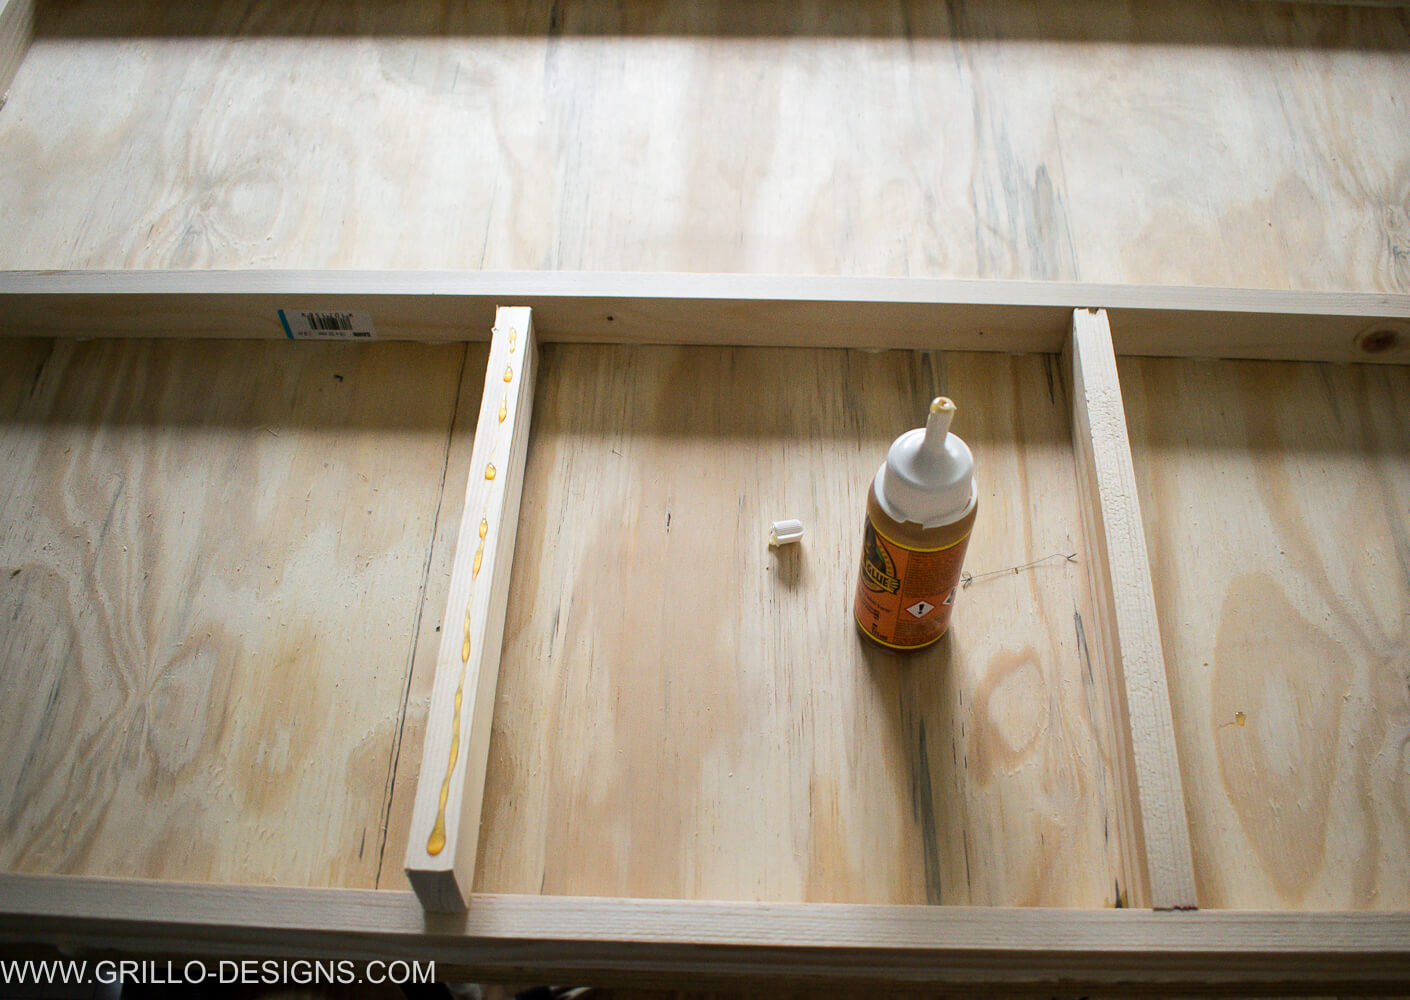 Apply wood glue to the wood that will be the inner grid